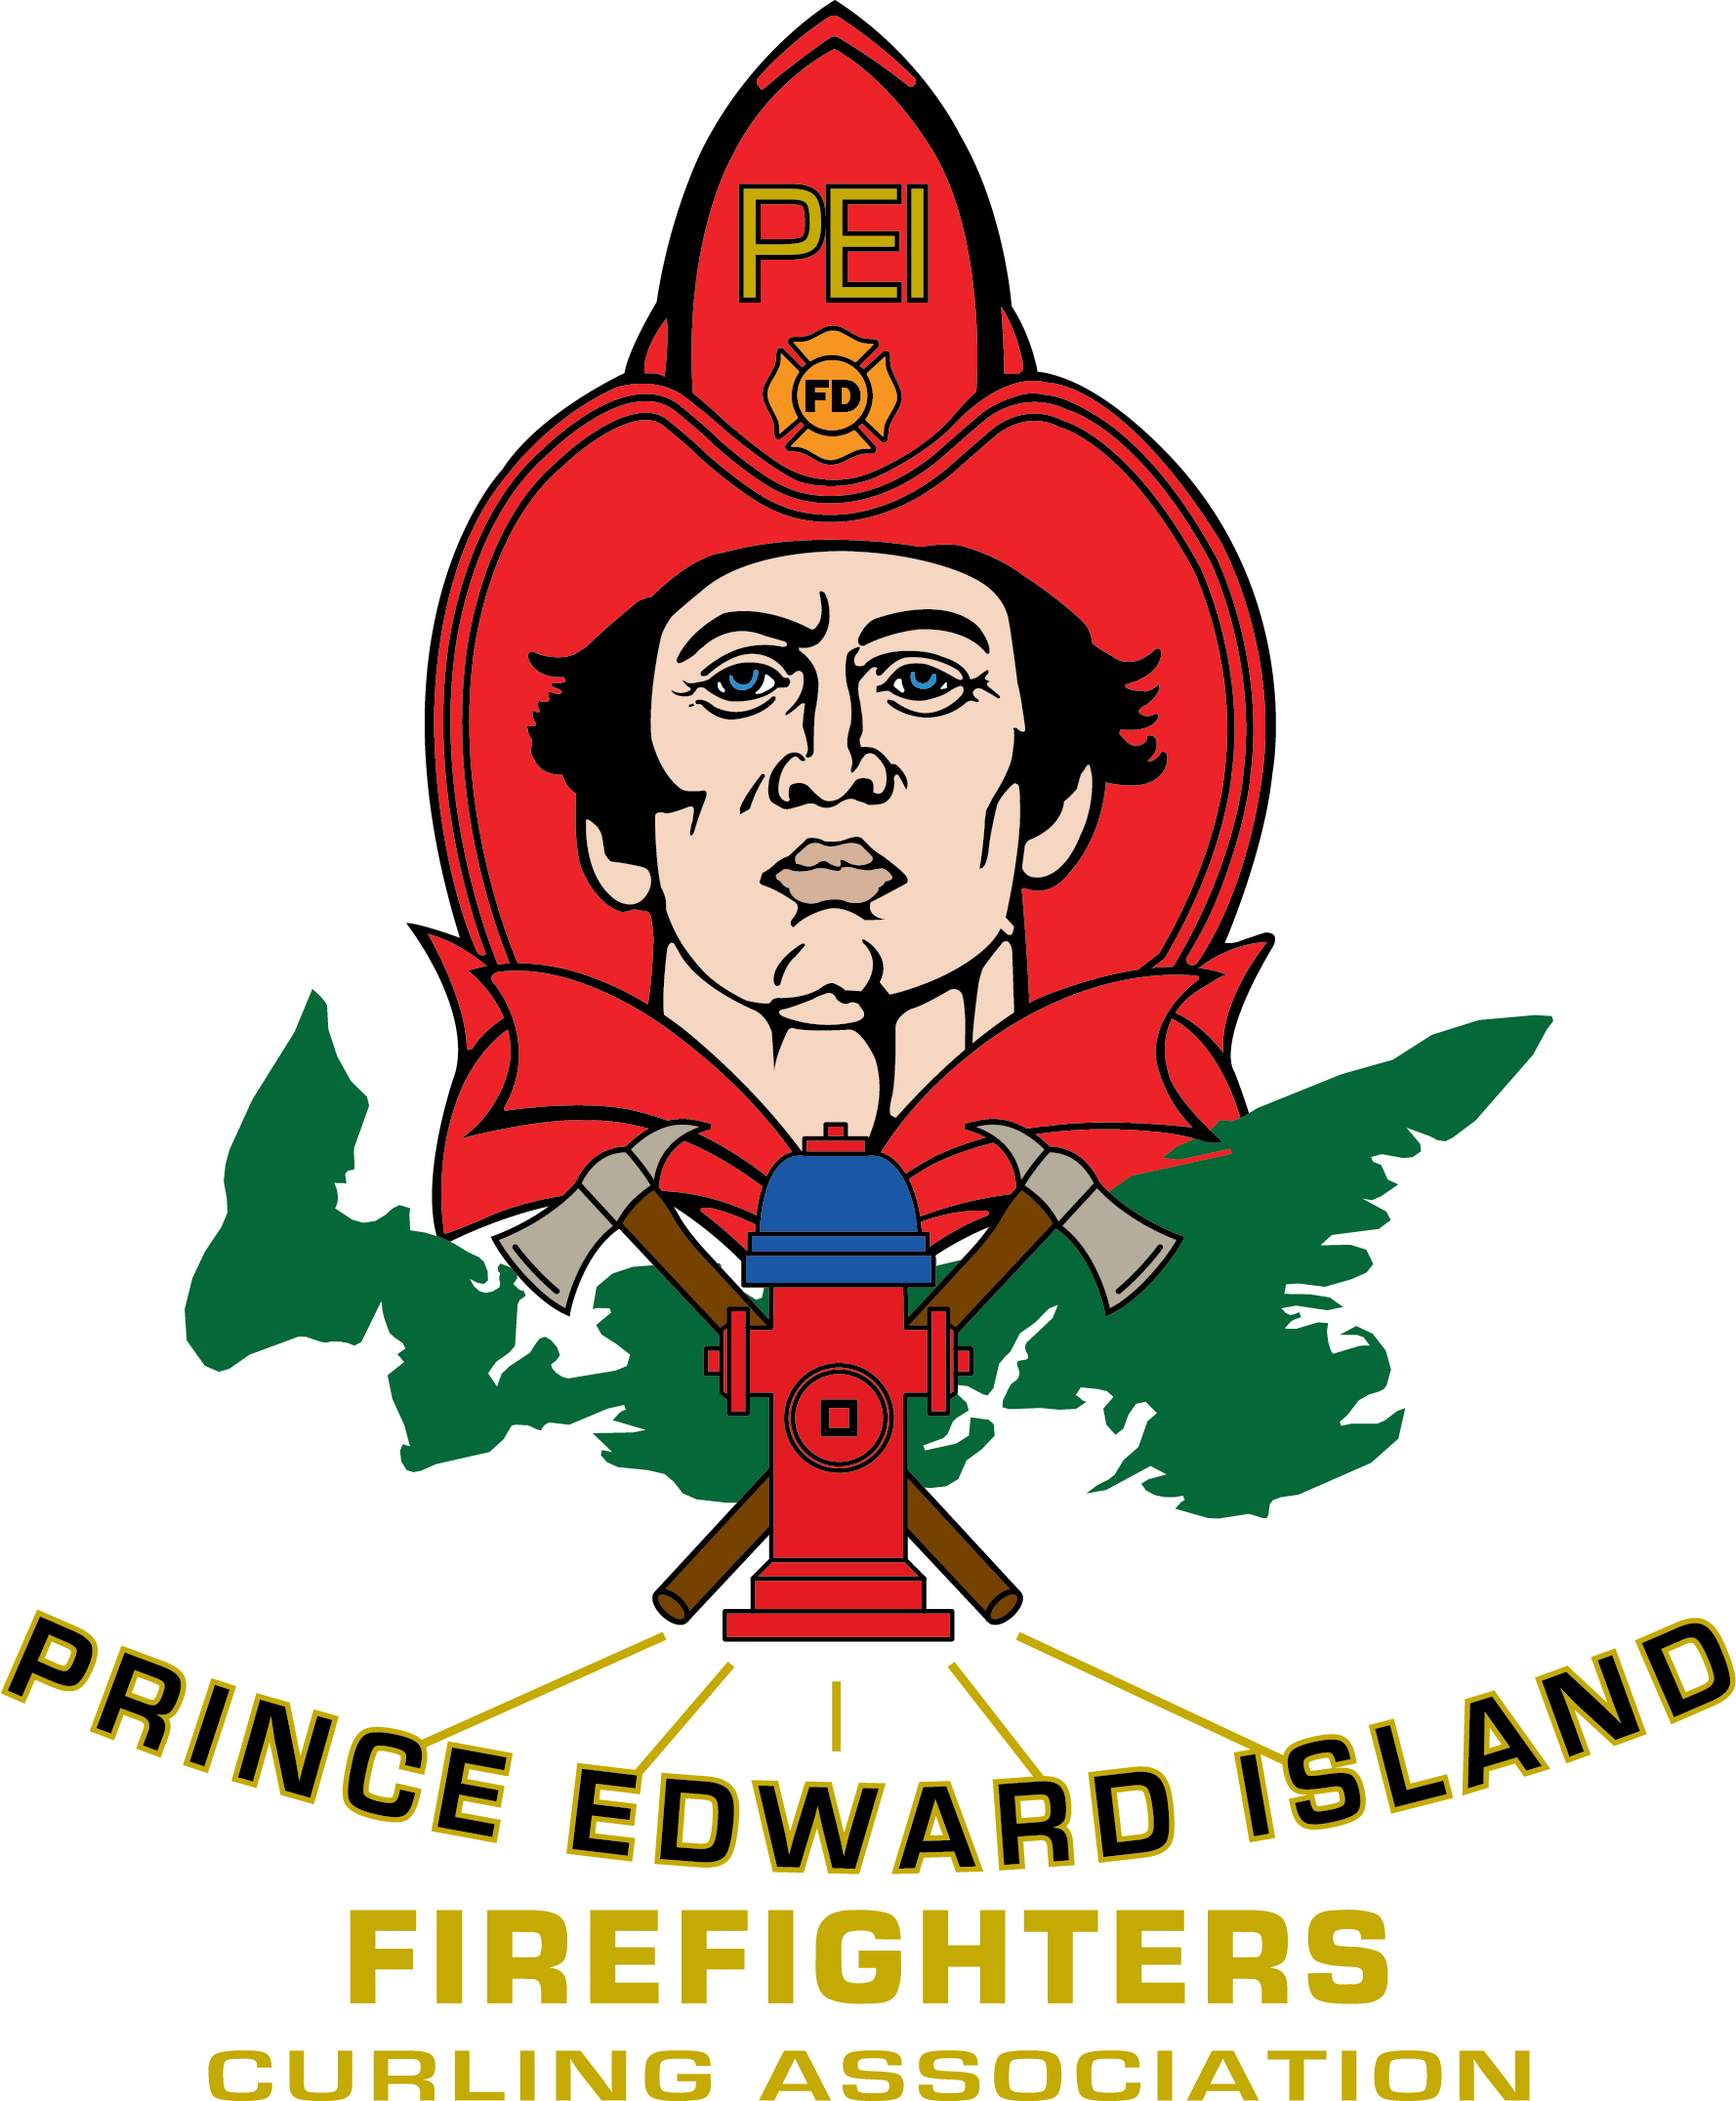 PEI Fire Fighters Curling Association